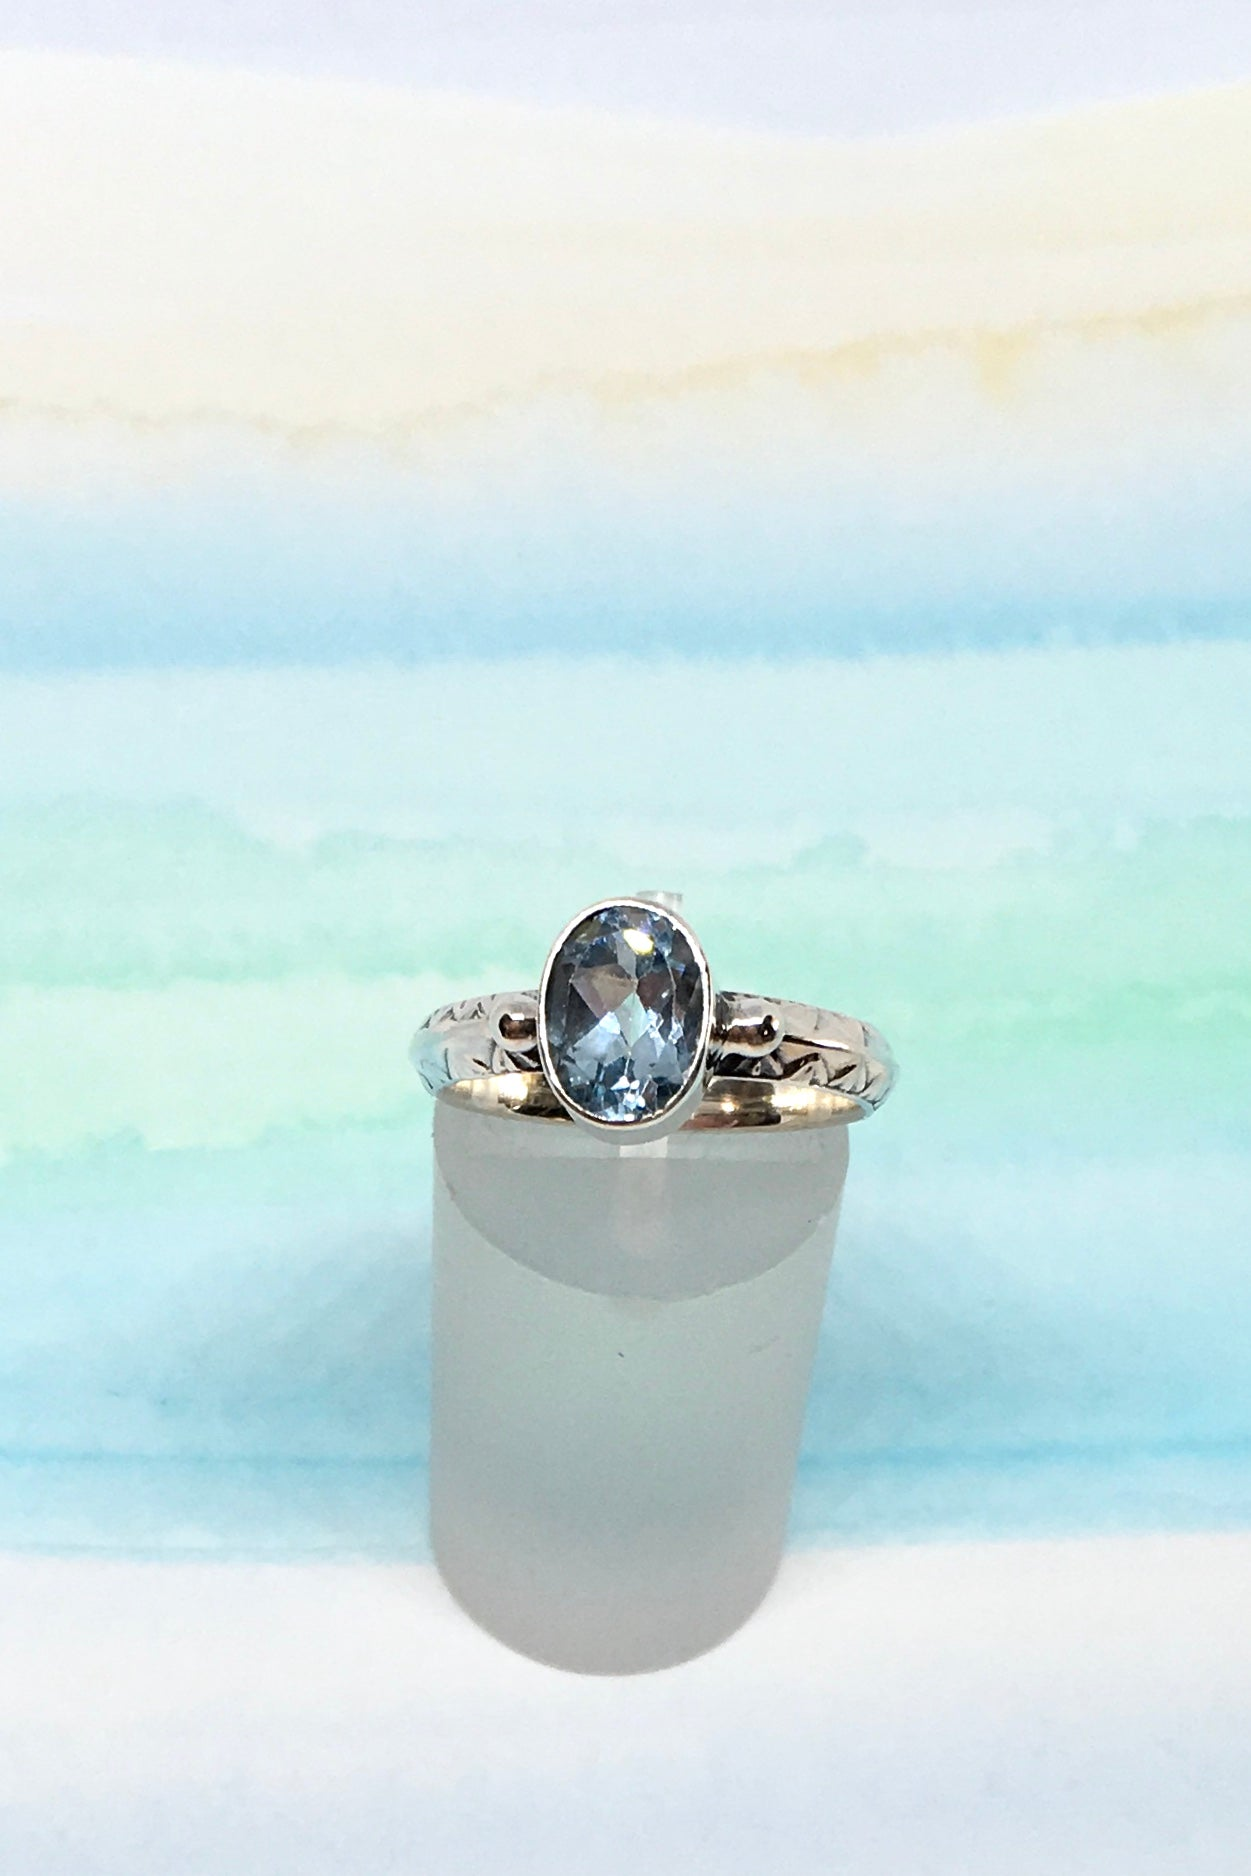 Oracle Ring Roman in 925 Silver with Blue Topaz Gemstone